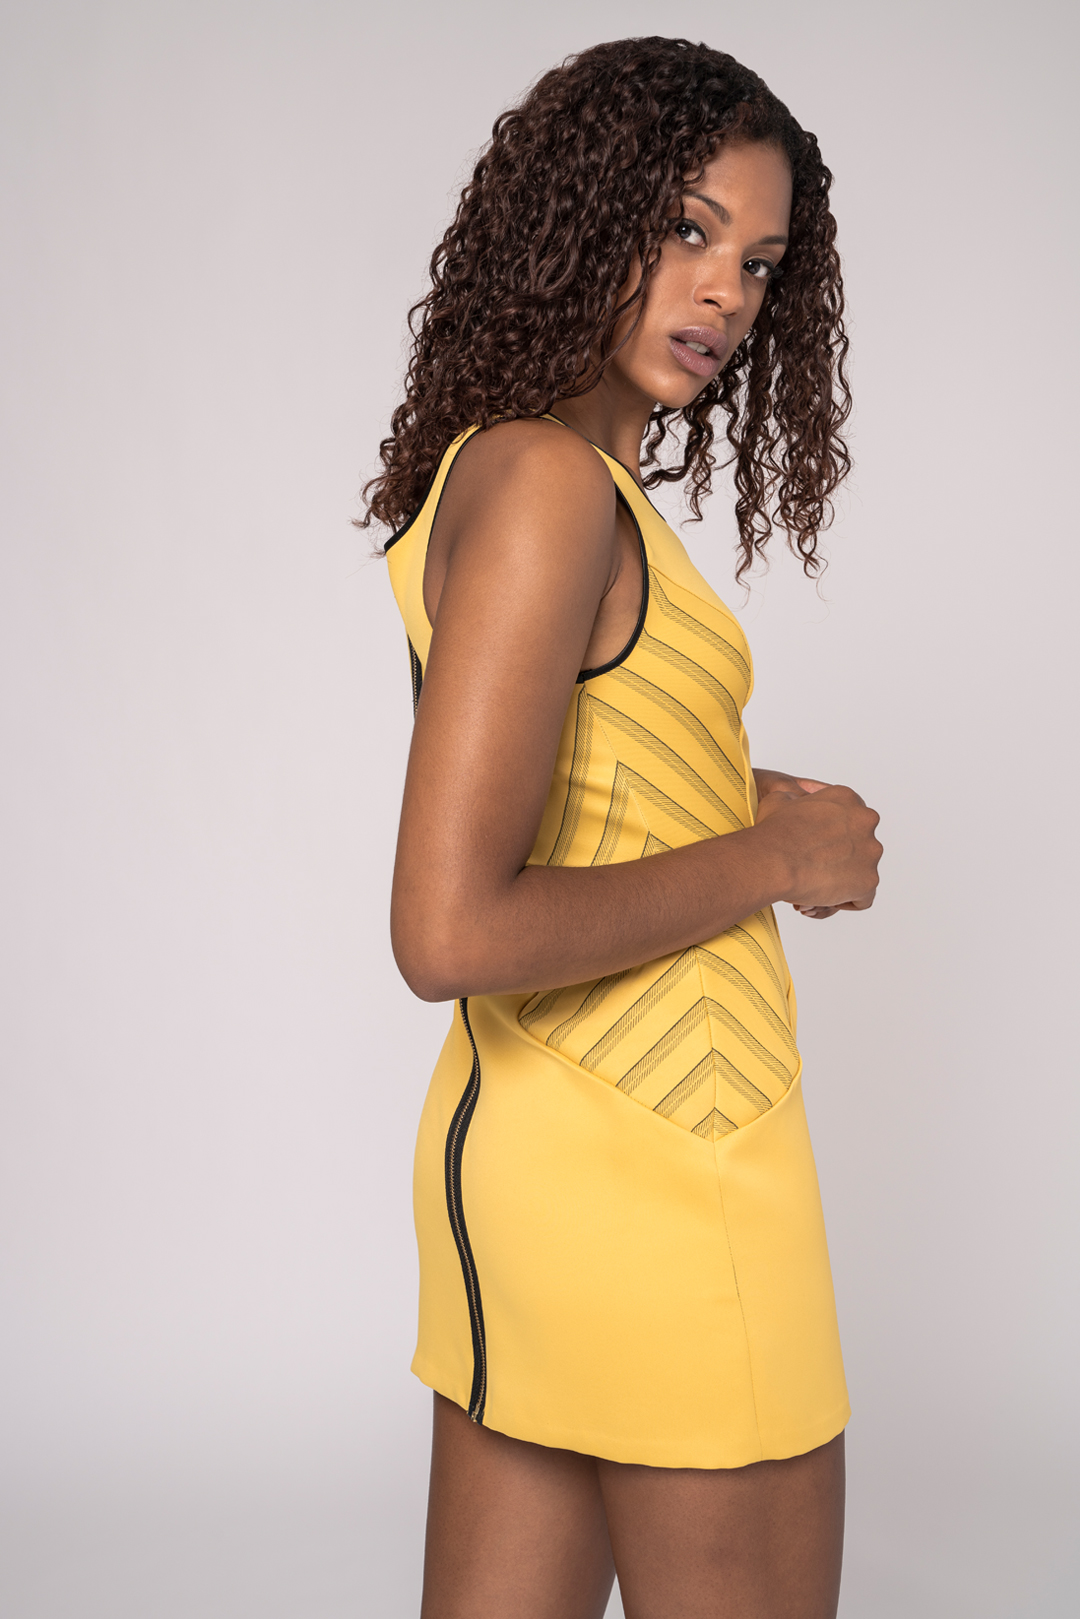 side view of a black model wearing a yellow sheath dress